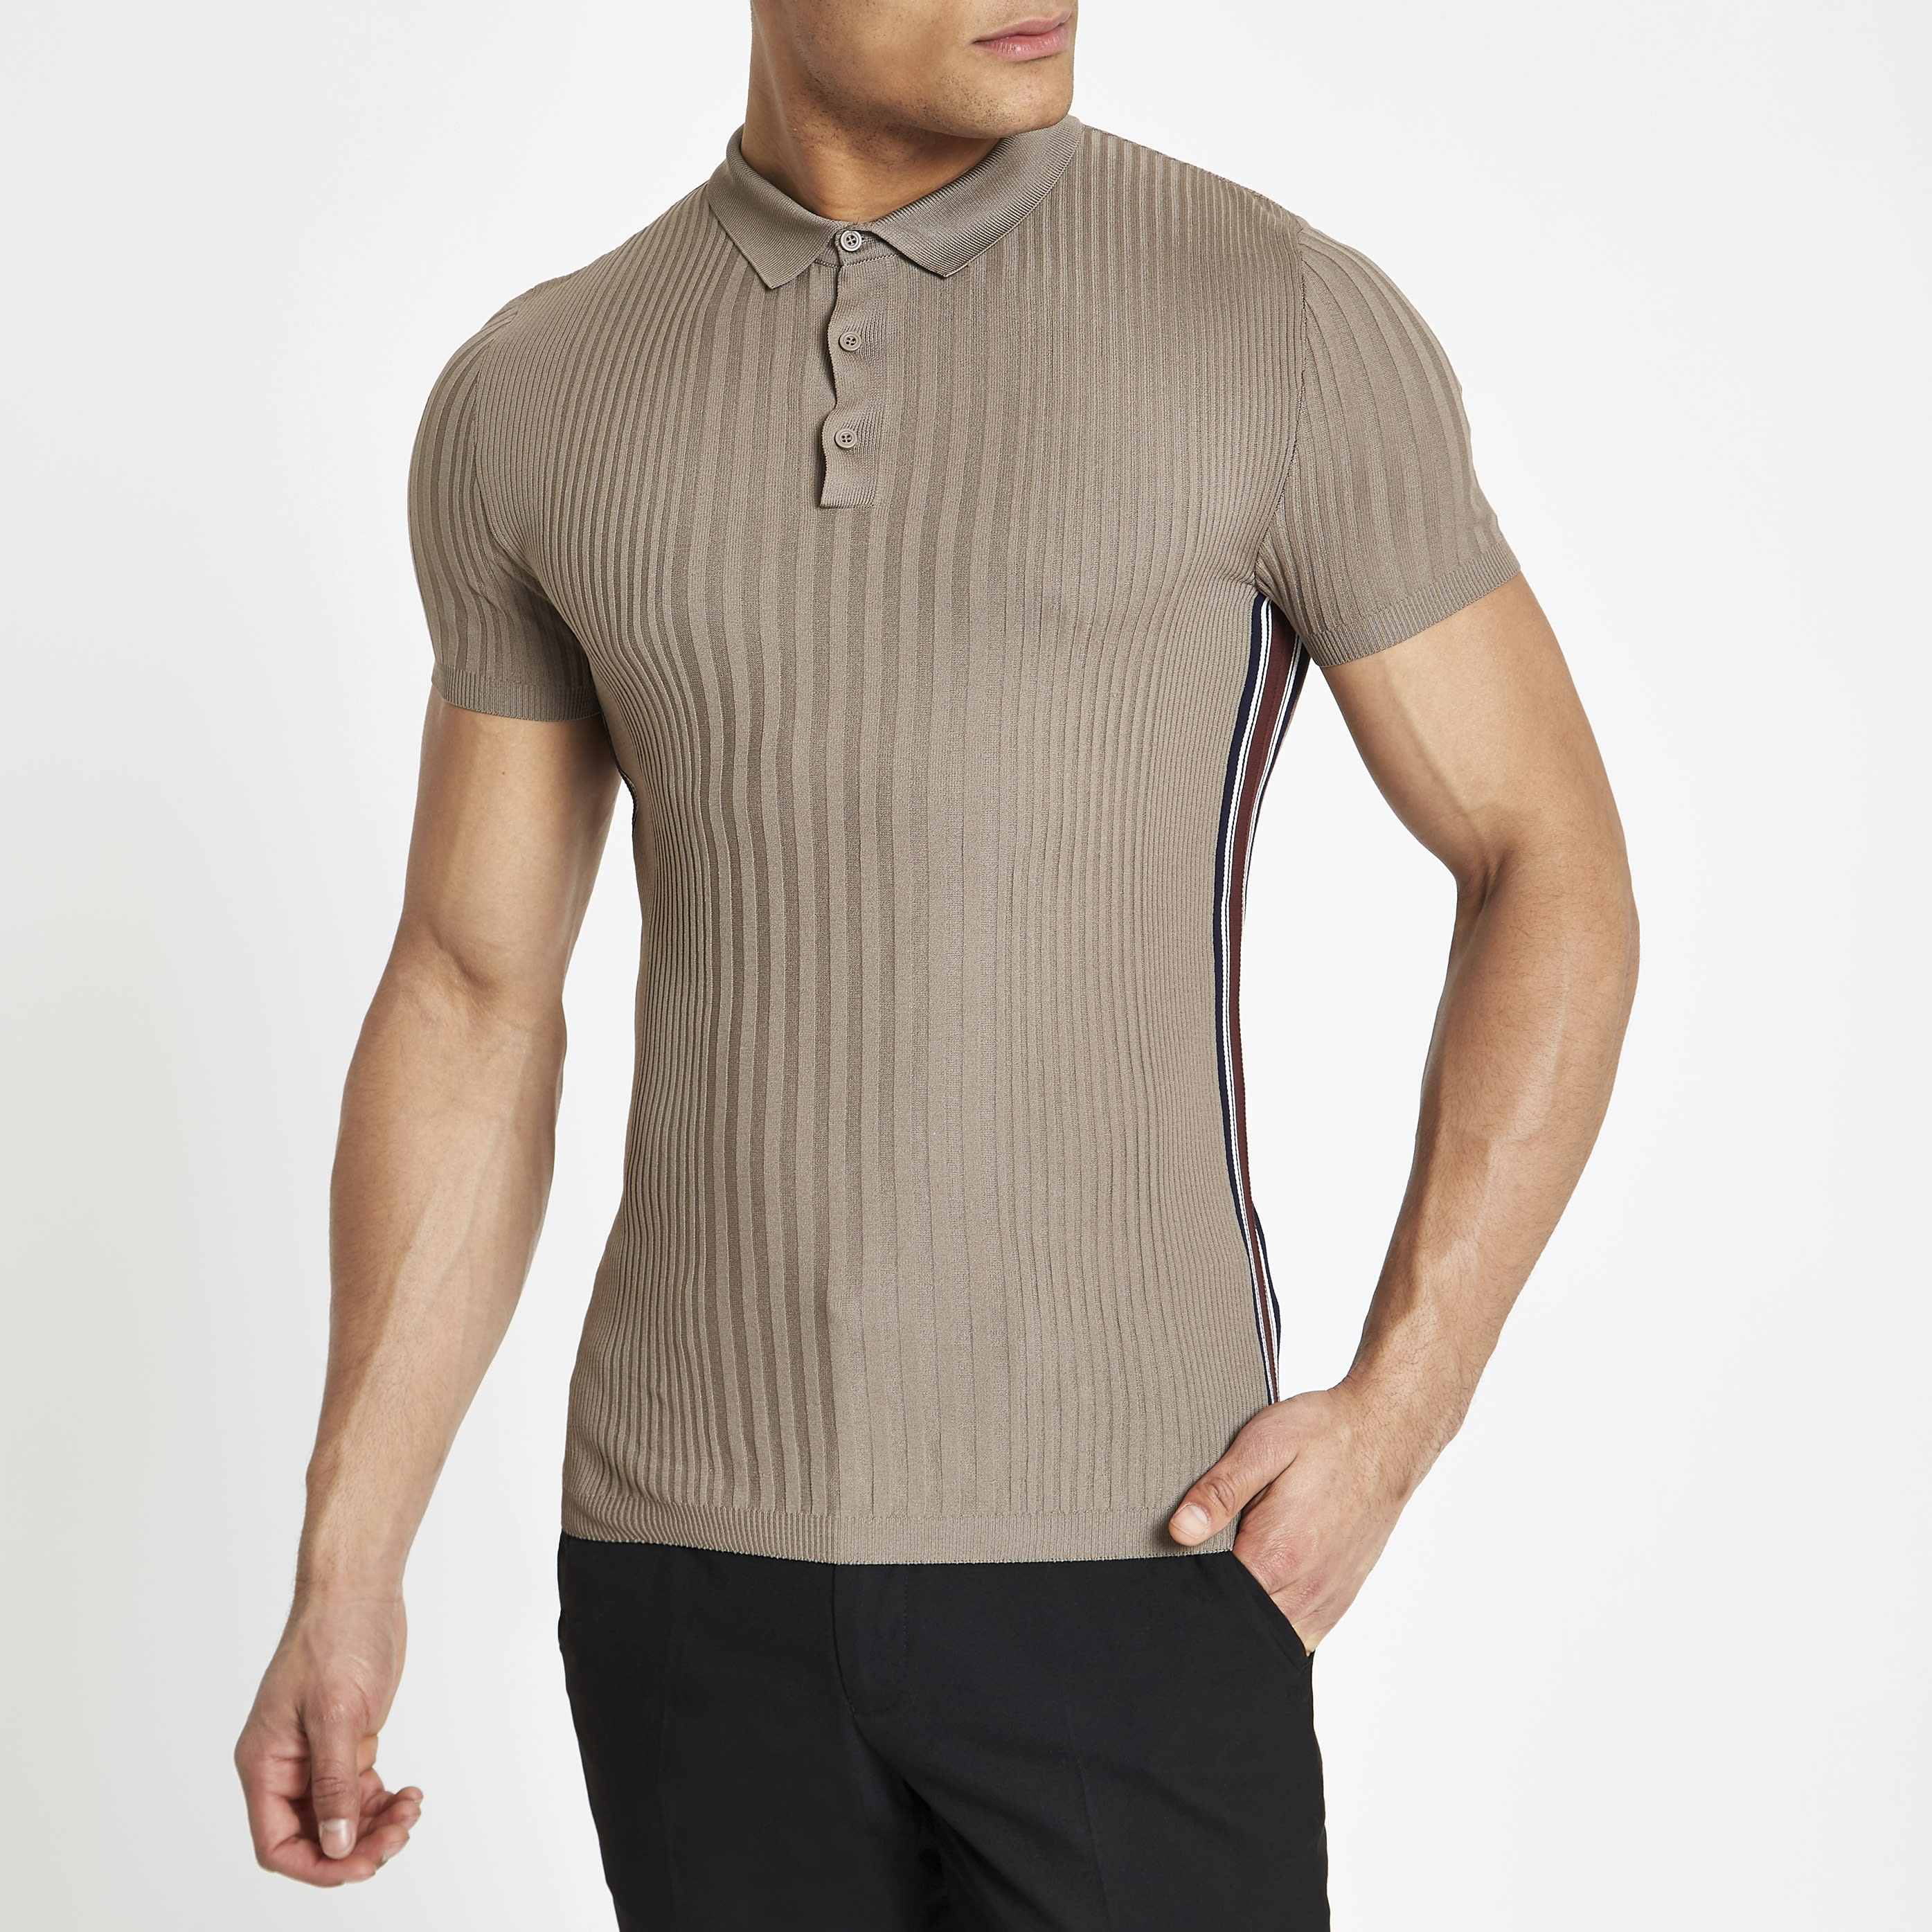 097a1a0ee Mens Light Brown ribbed muscle fit tape polo shirt | £28.00 ...